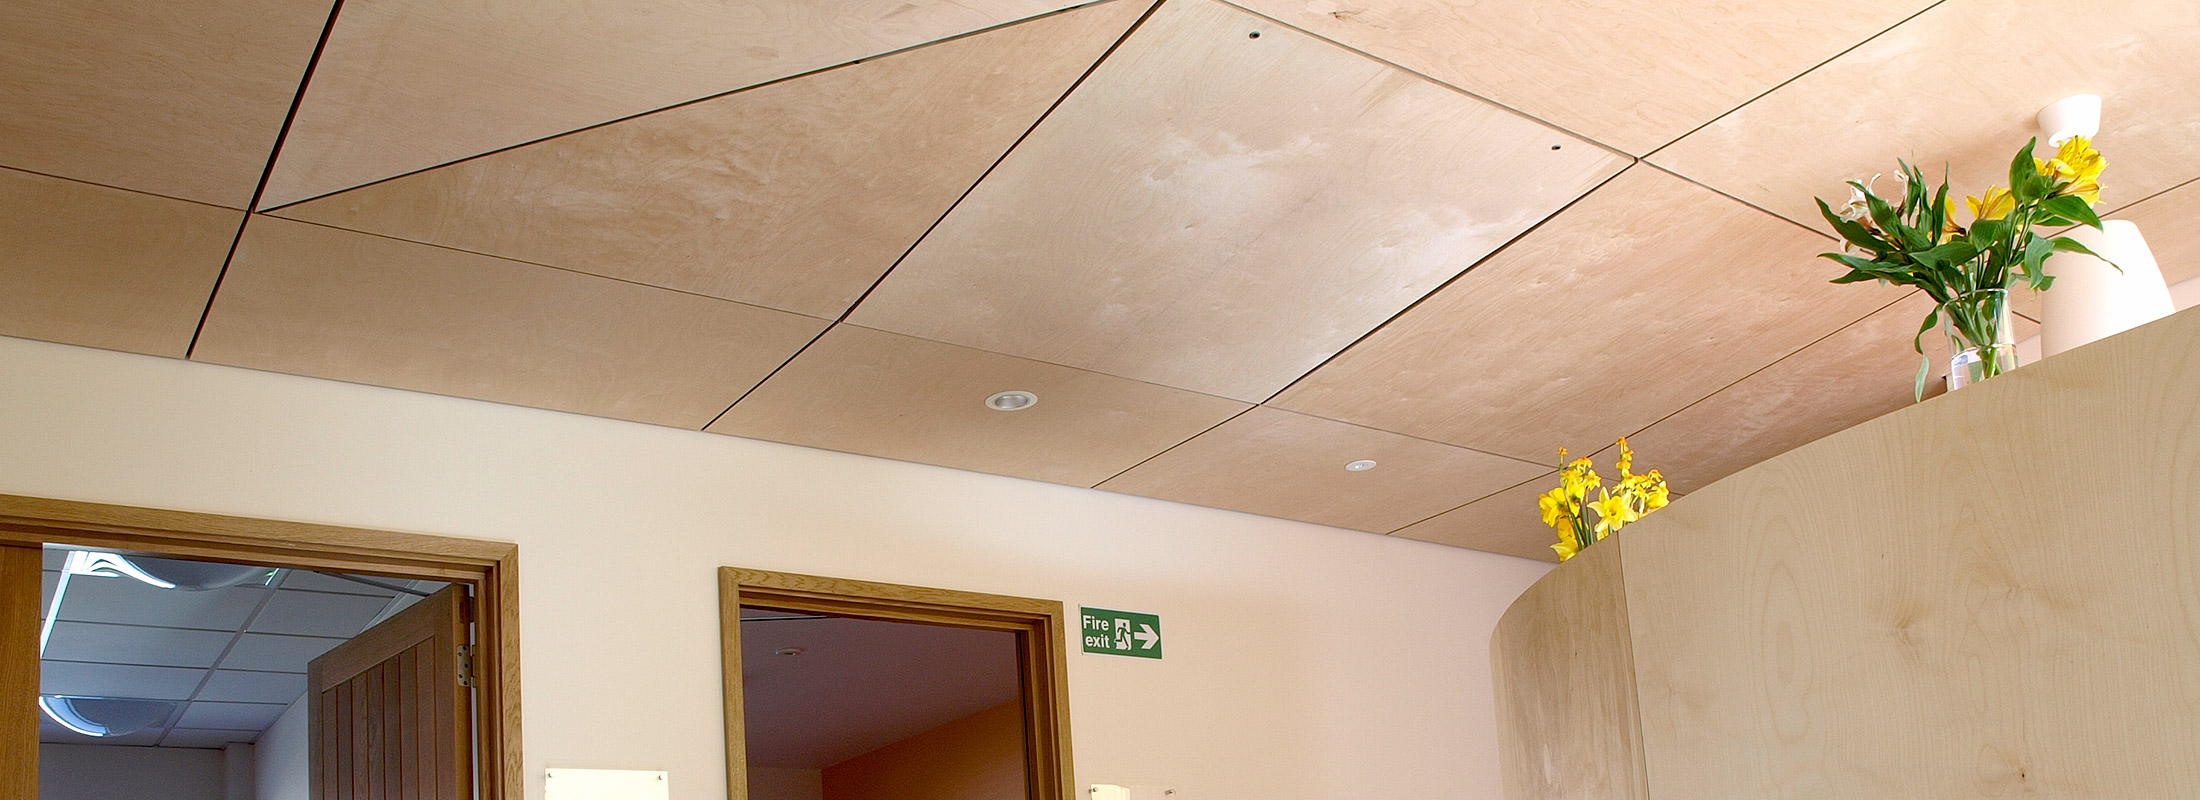 ASC | Suspended Ceilings-Installers-Commercial-Educational